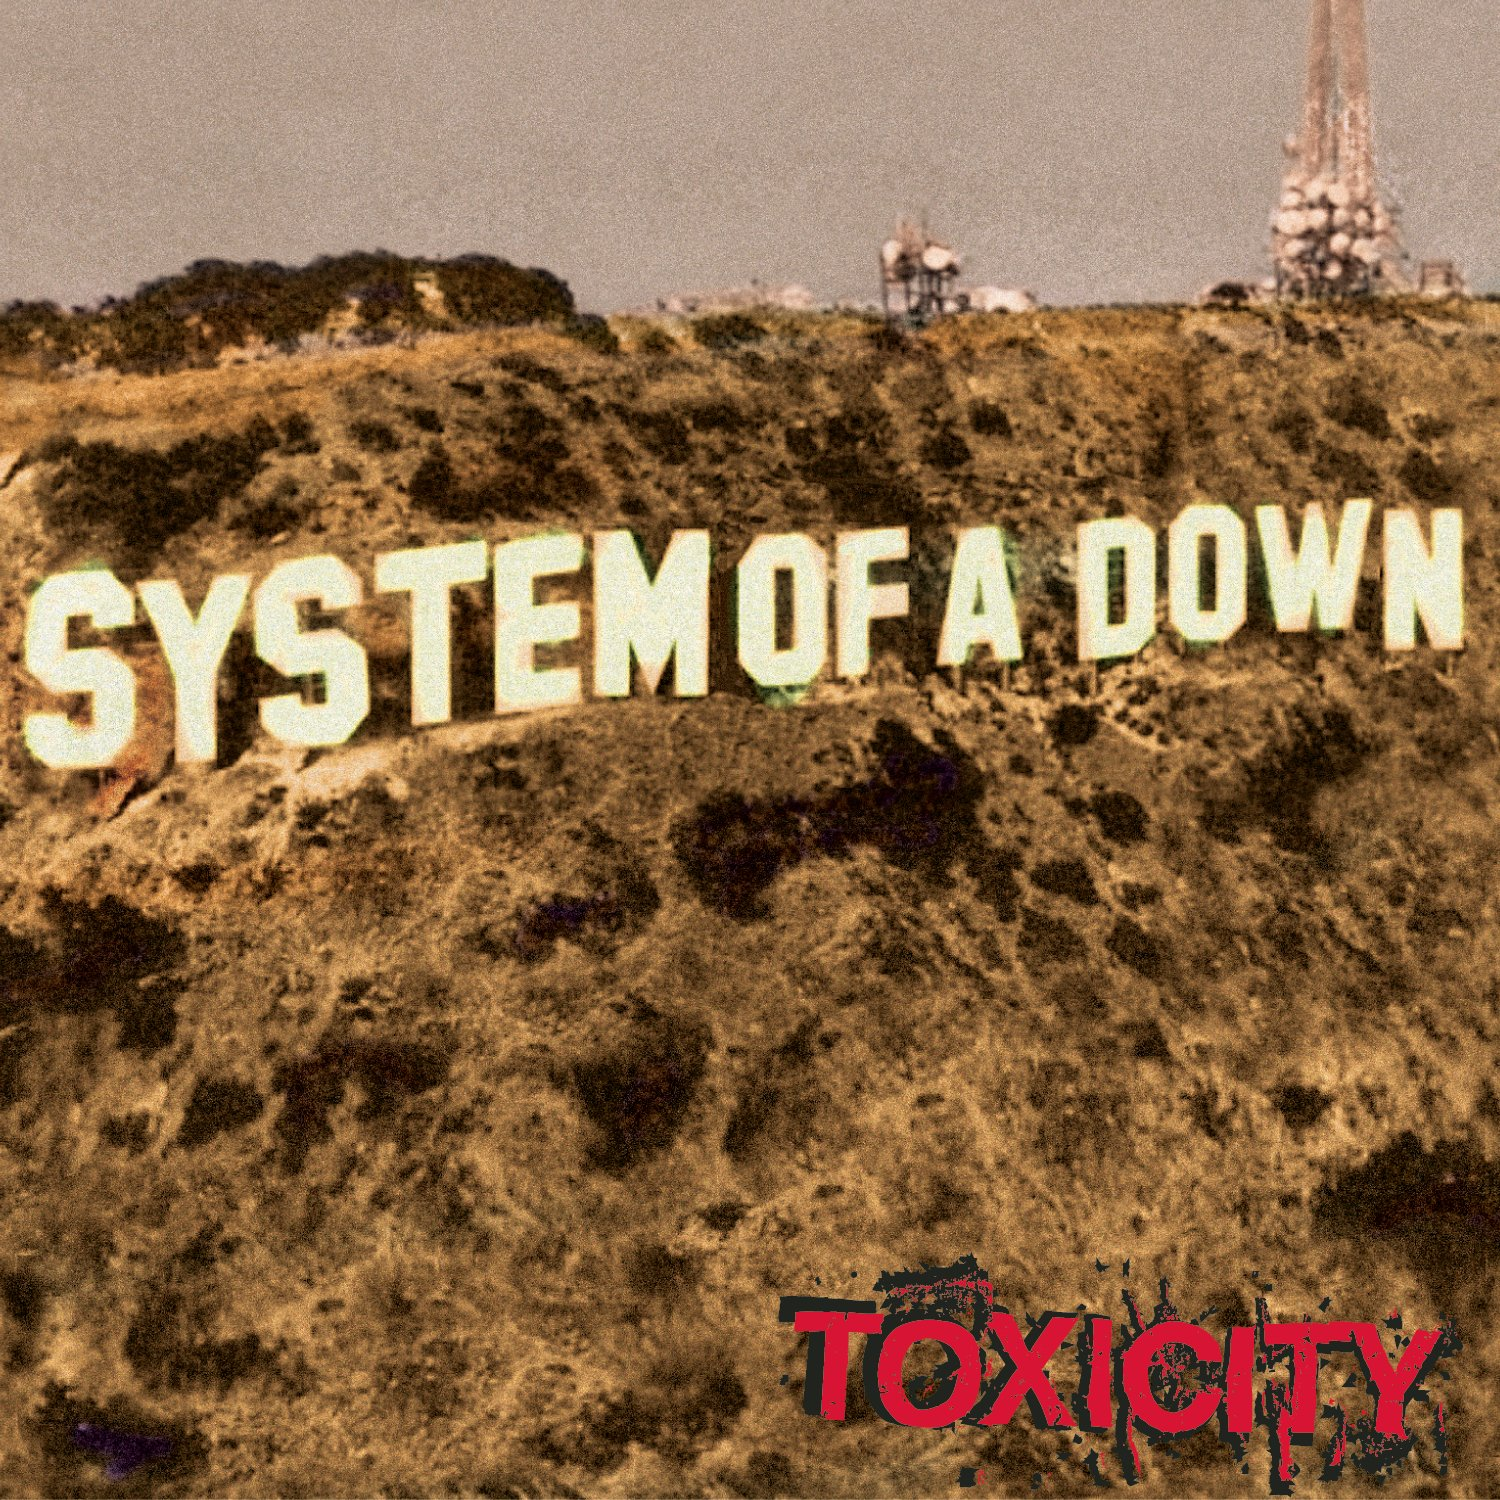 50 Years, 50 Albums 2001: System of a Down 'Toxicity'